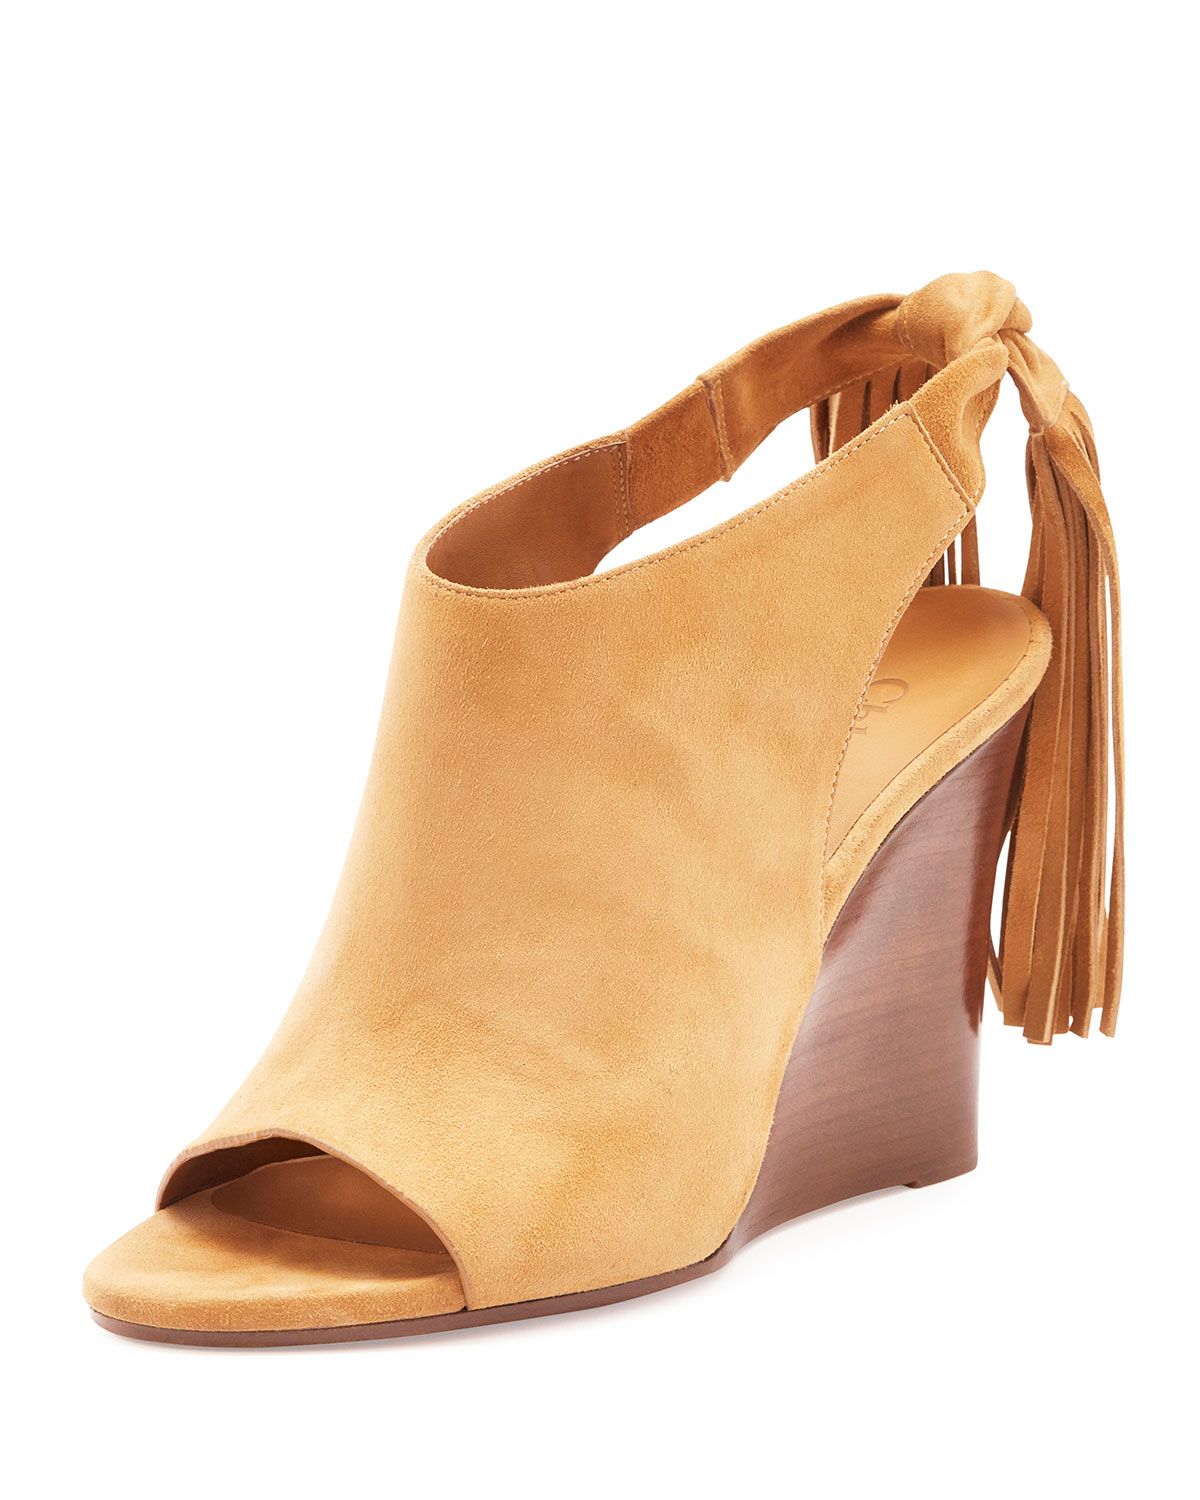 buy cheap extremely Chloé Suede Round-Toe Wedges outlet buy cheap factory outlet outlet 2015 new 2014 cheap online cTaMr